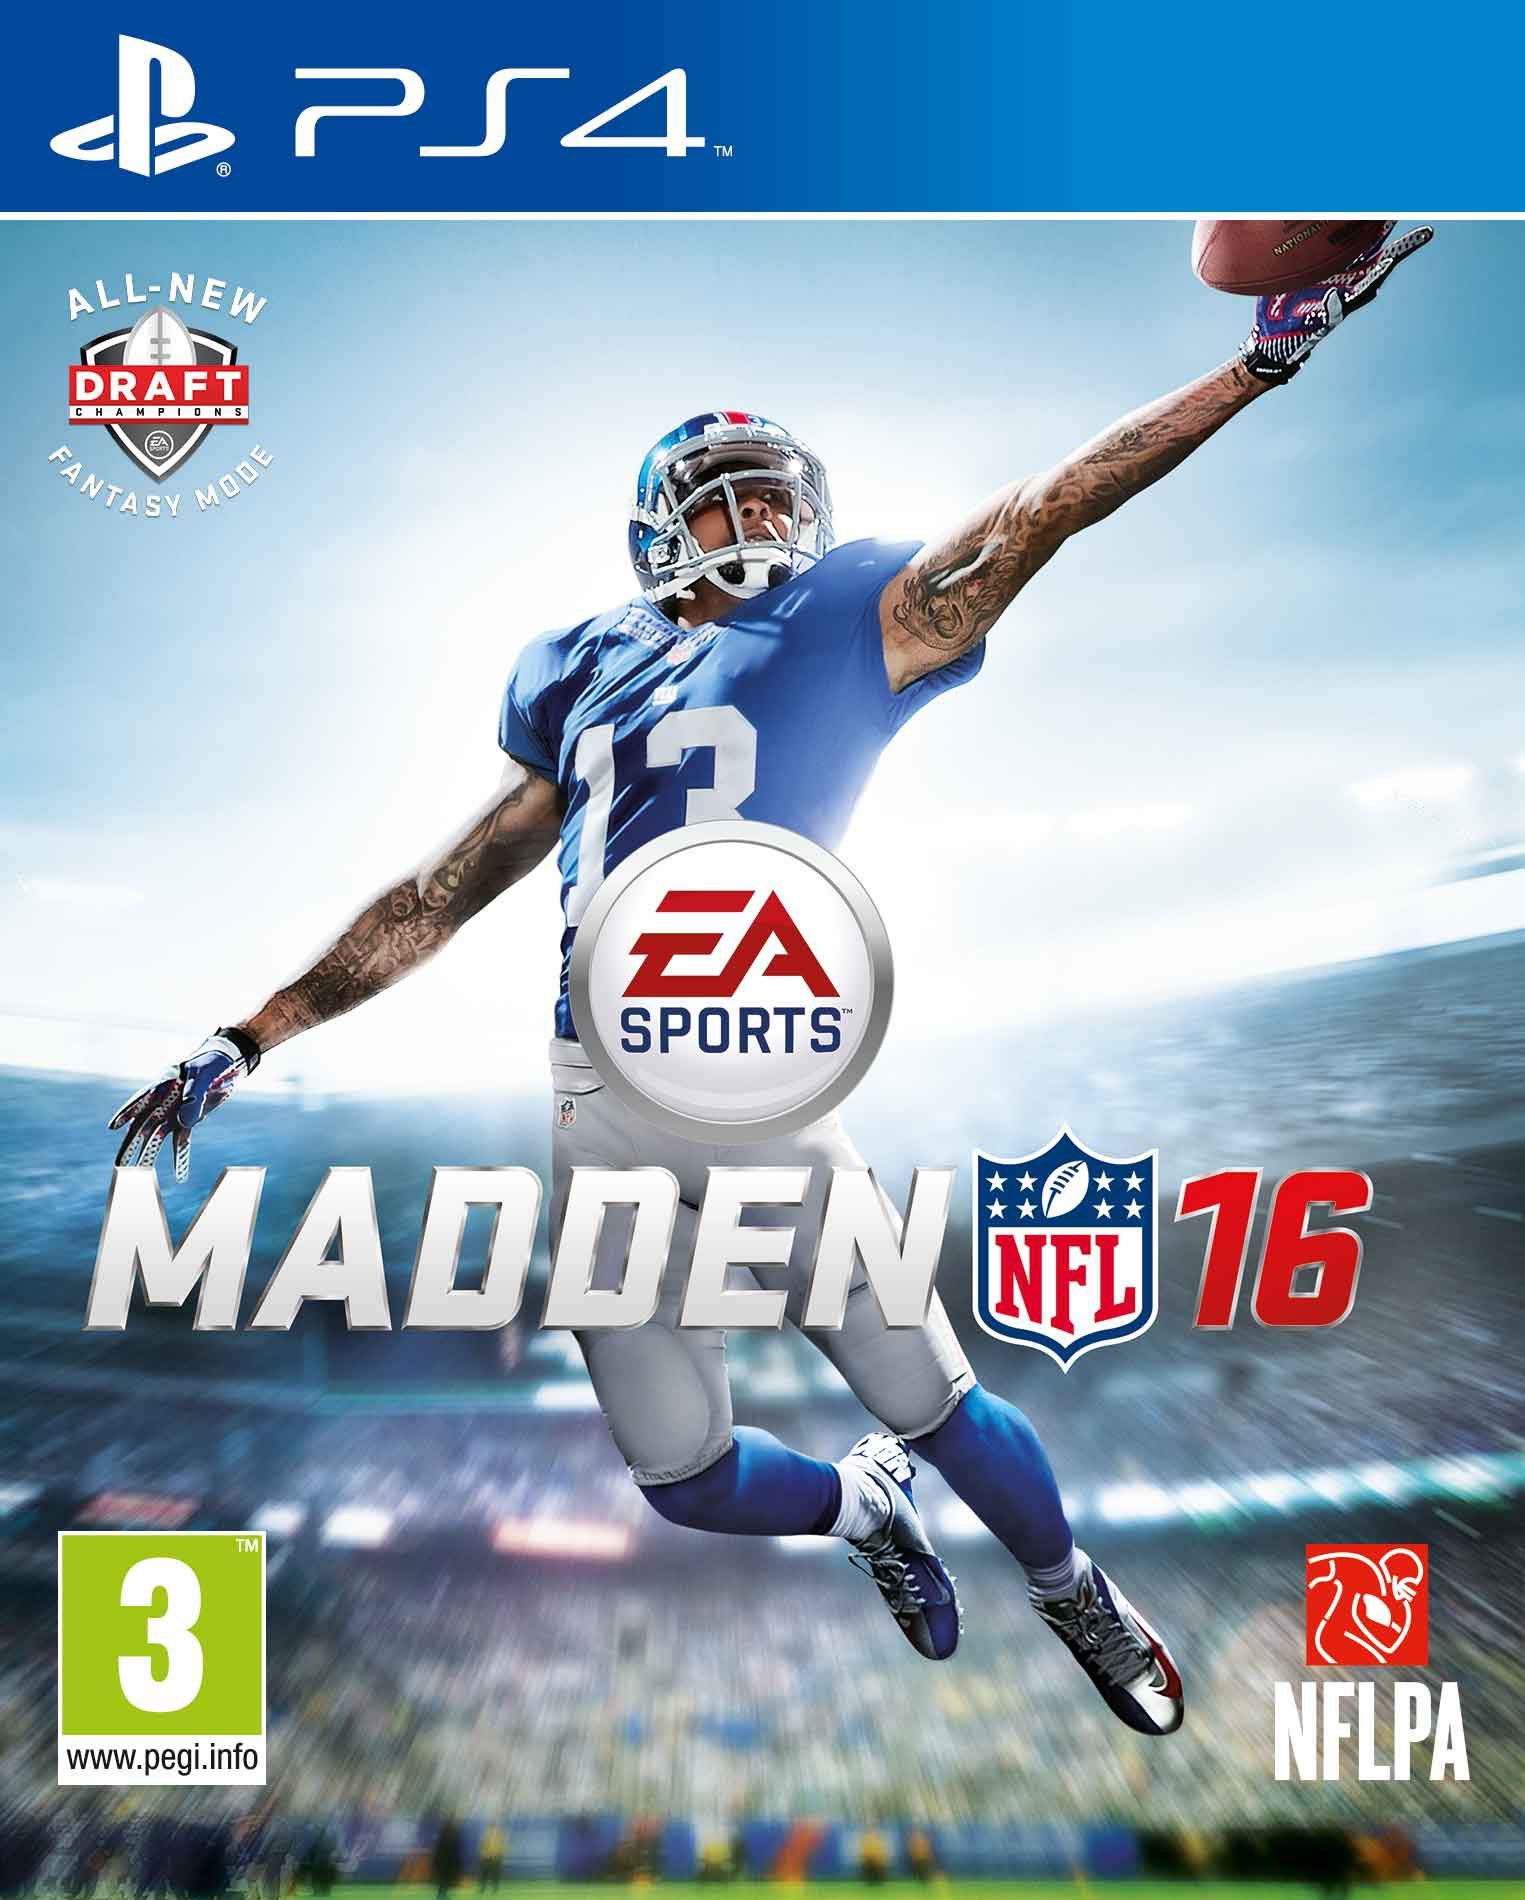 1024194 : Madden NFL 16 (PS4)